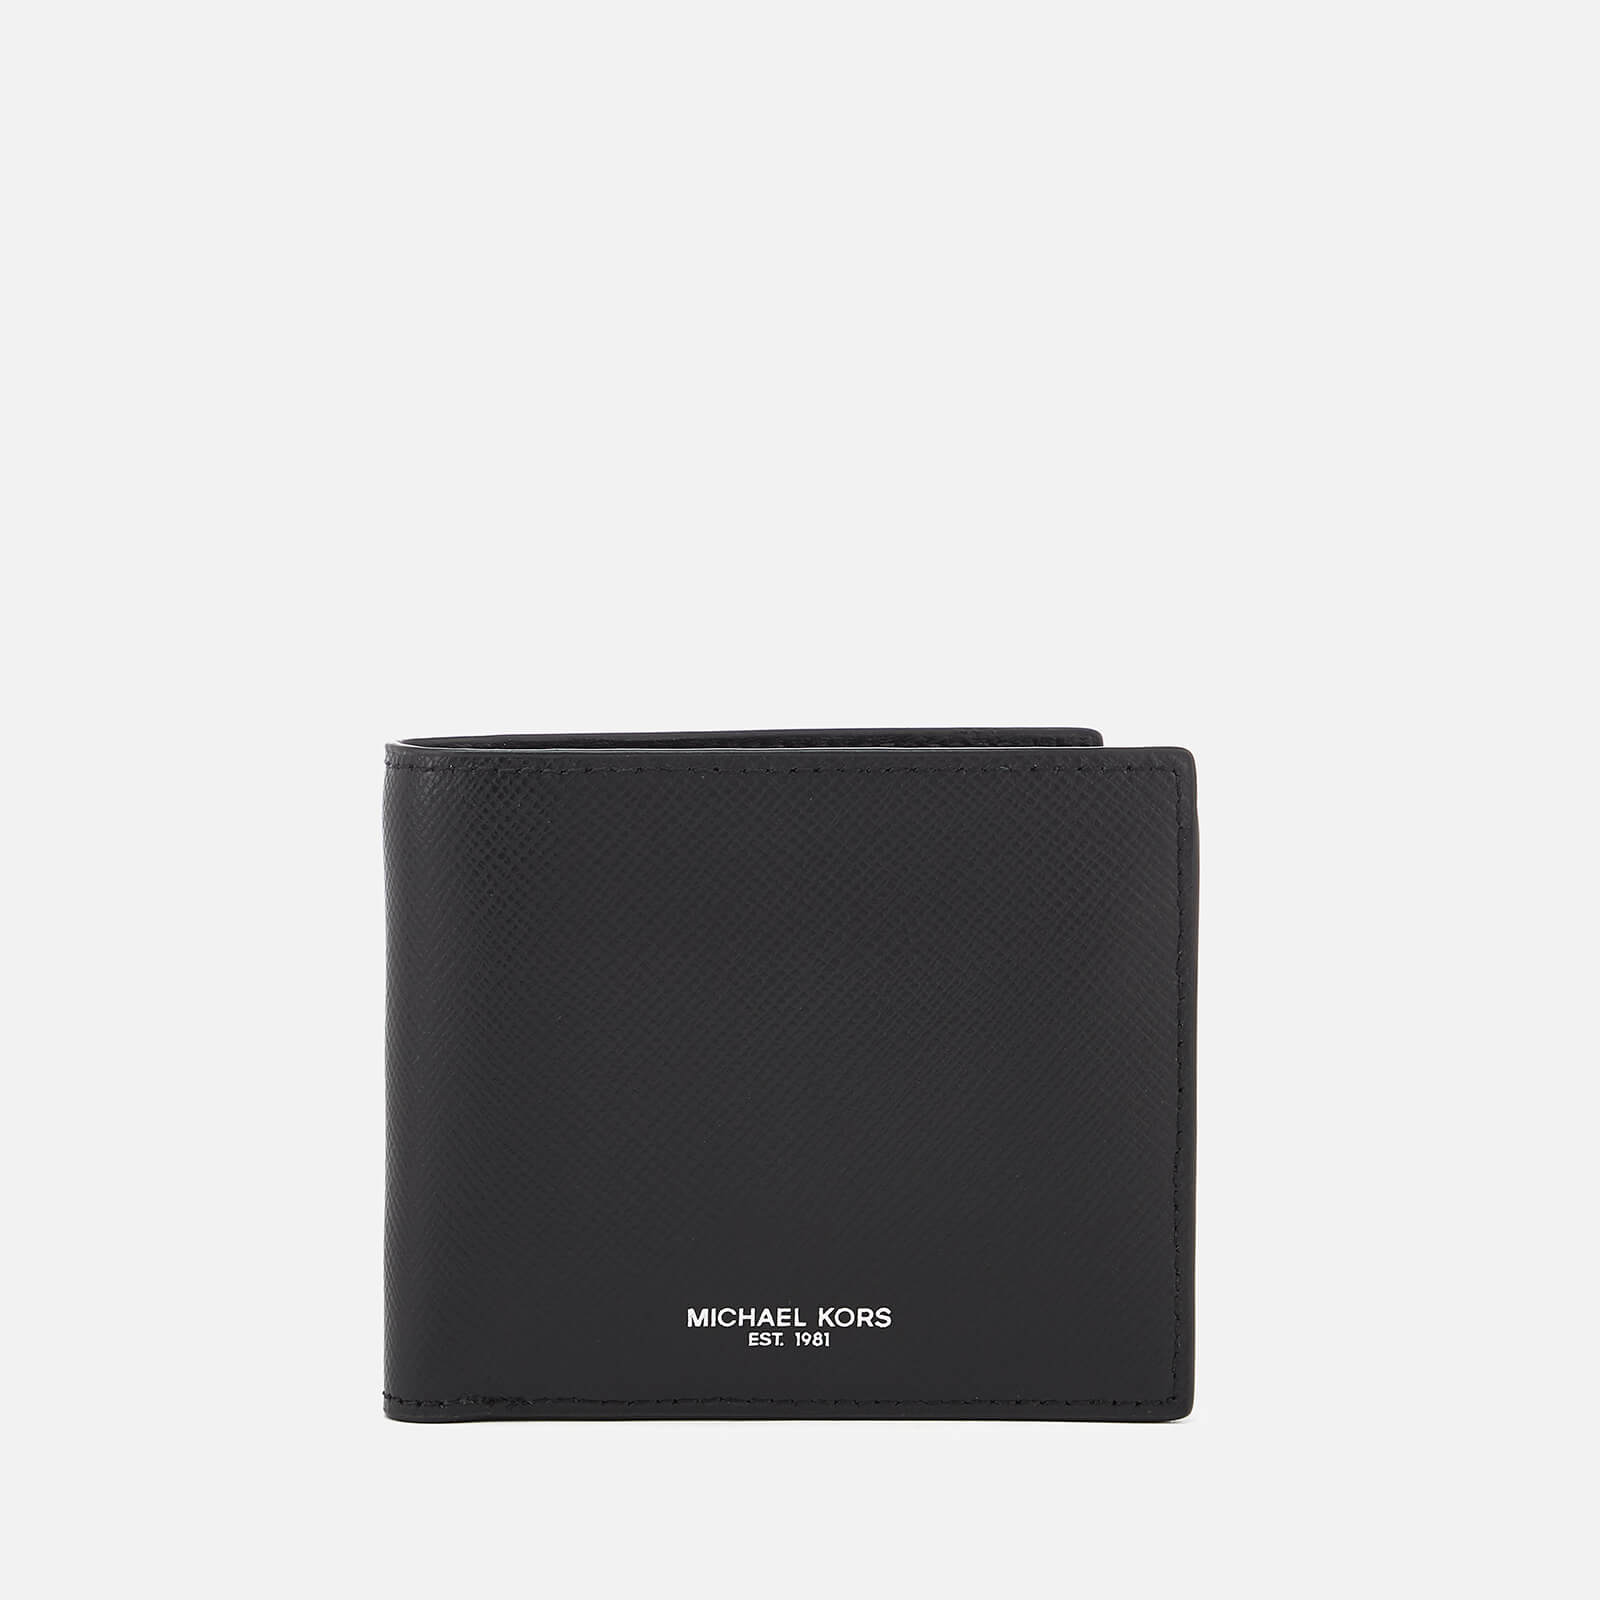 319169fdc2a0 Michael Kors Men s Harrison Billfold Wallet With Coin Pocket - Black Mens  Accessories